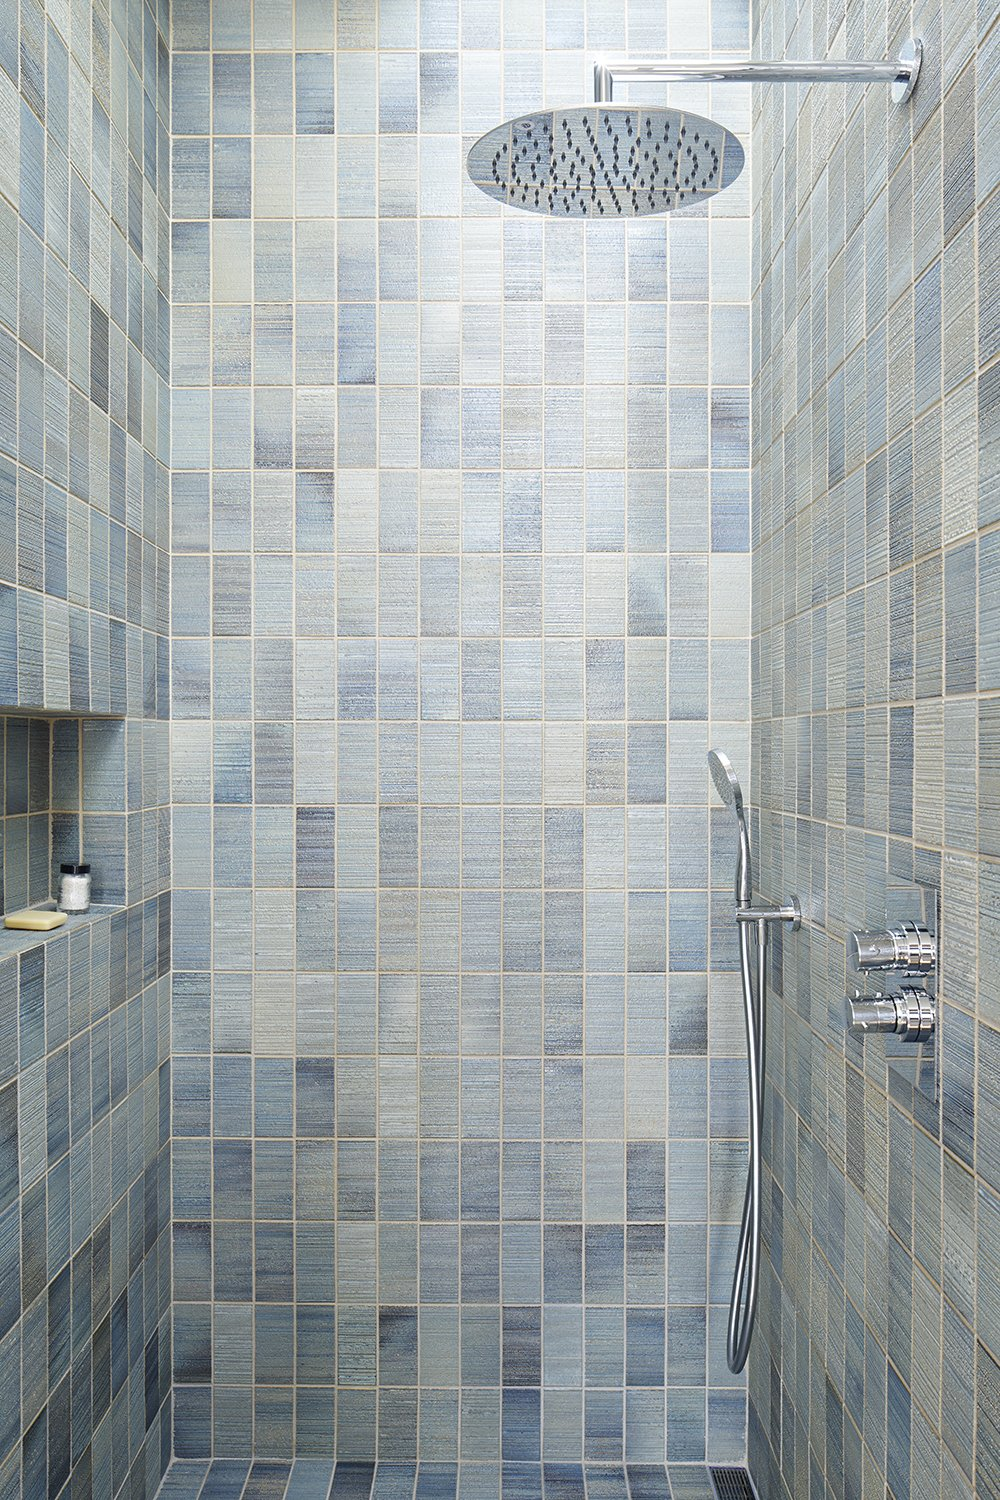 Tagged: Bath Room, Enclosed Shower, and Ceramic Tile Wall.  Randall Street by YAMAMAR Design